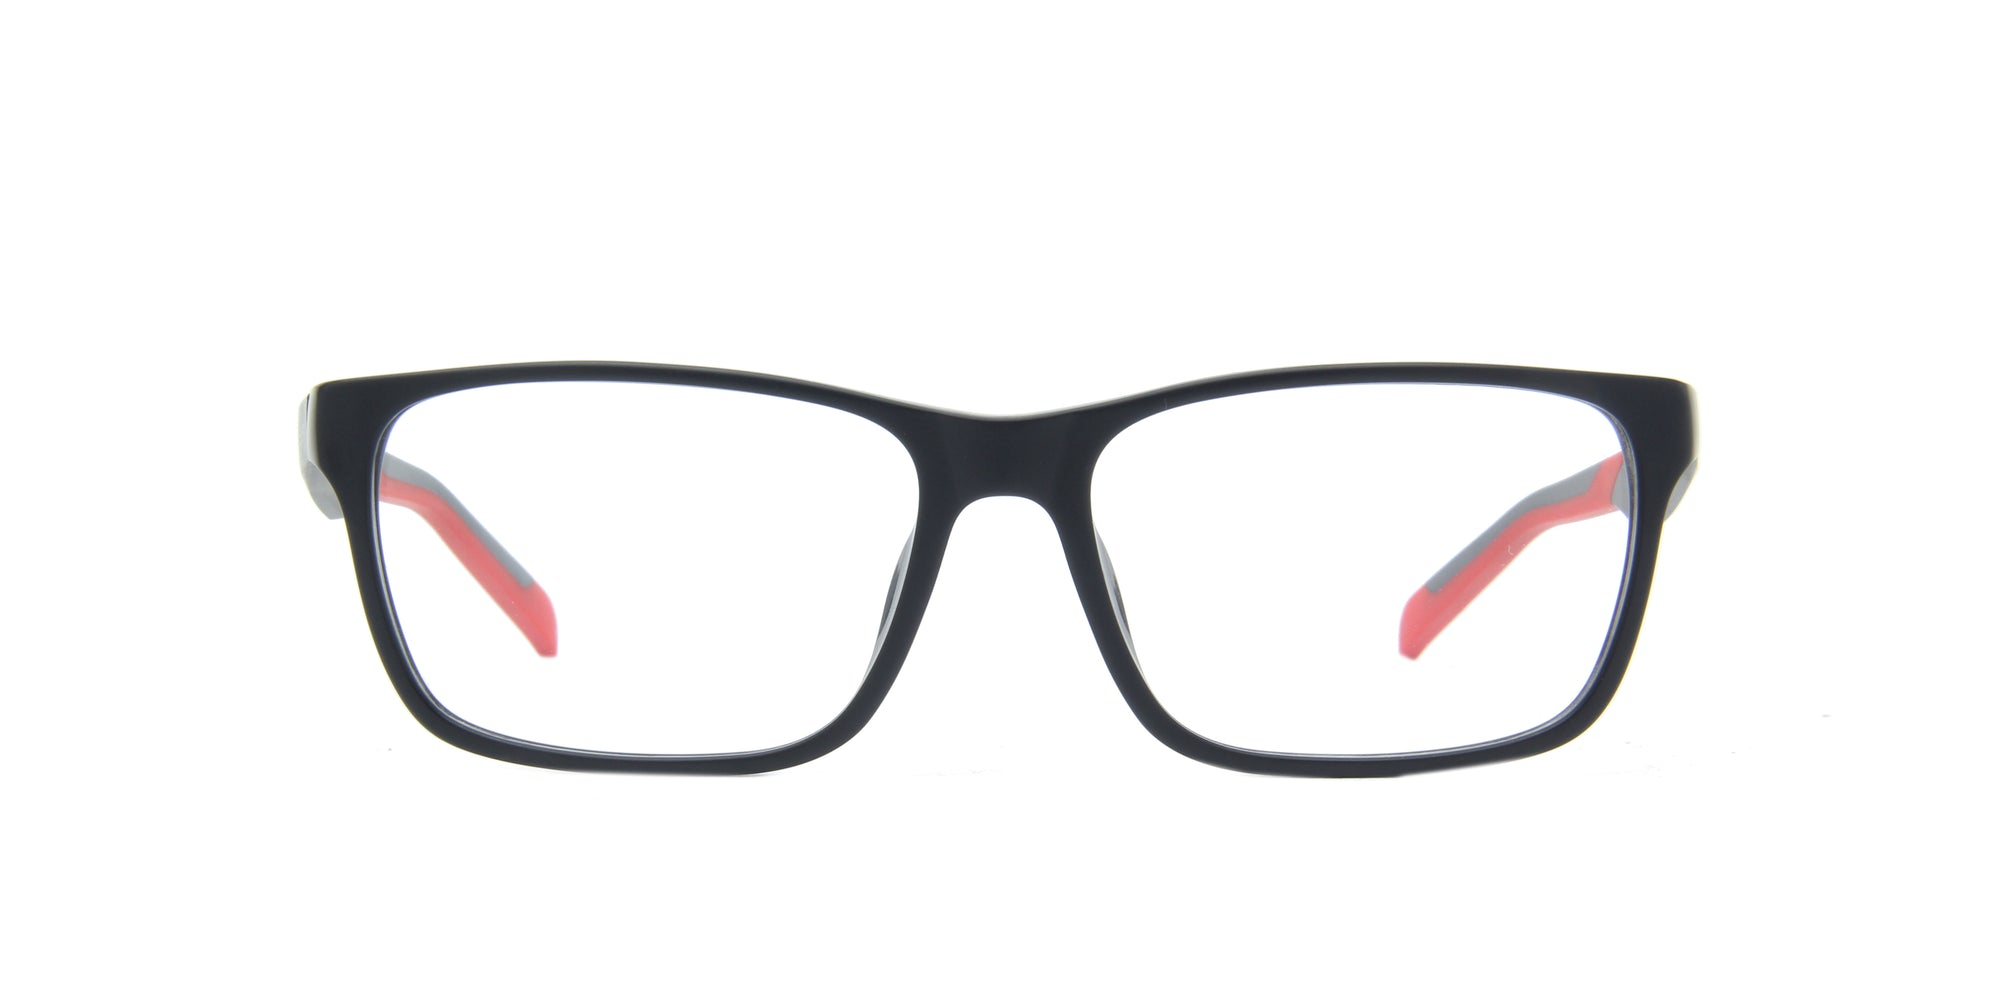 Tag Heuer - Tag B Urban Black Square Men Eyeglasses - 57mm